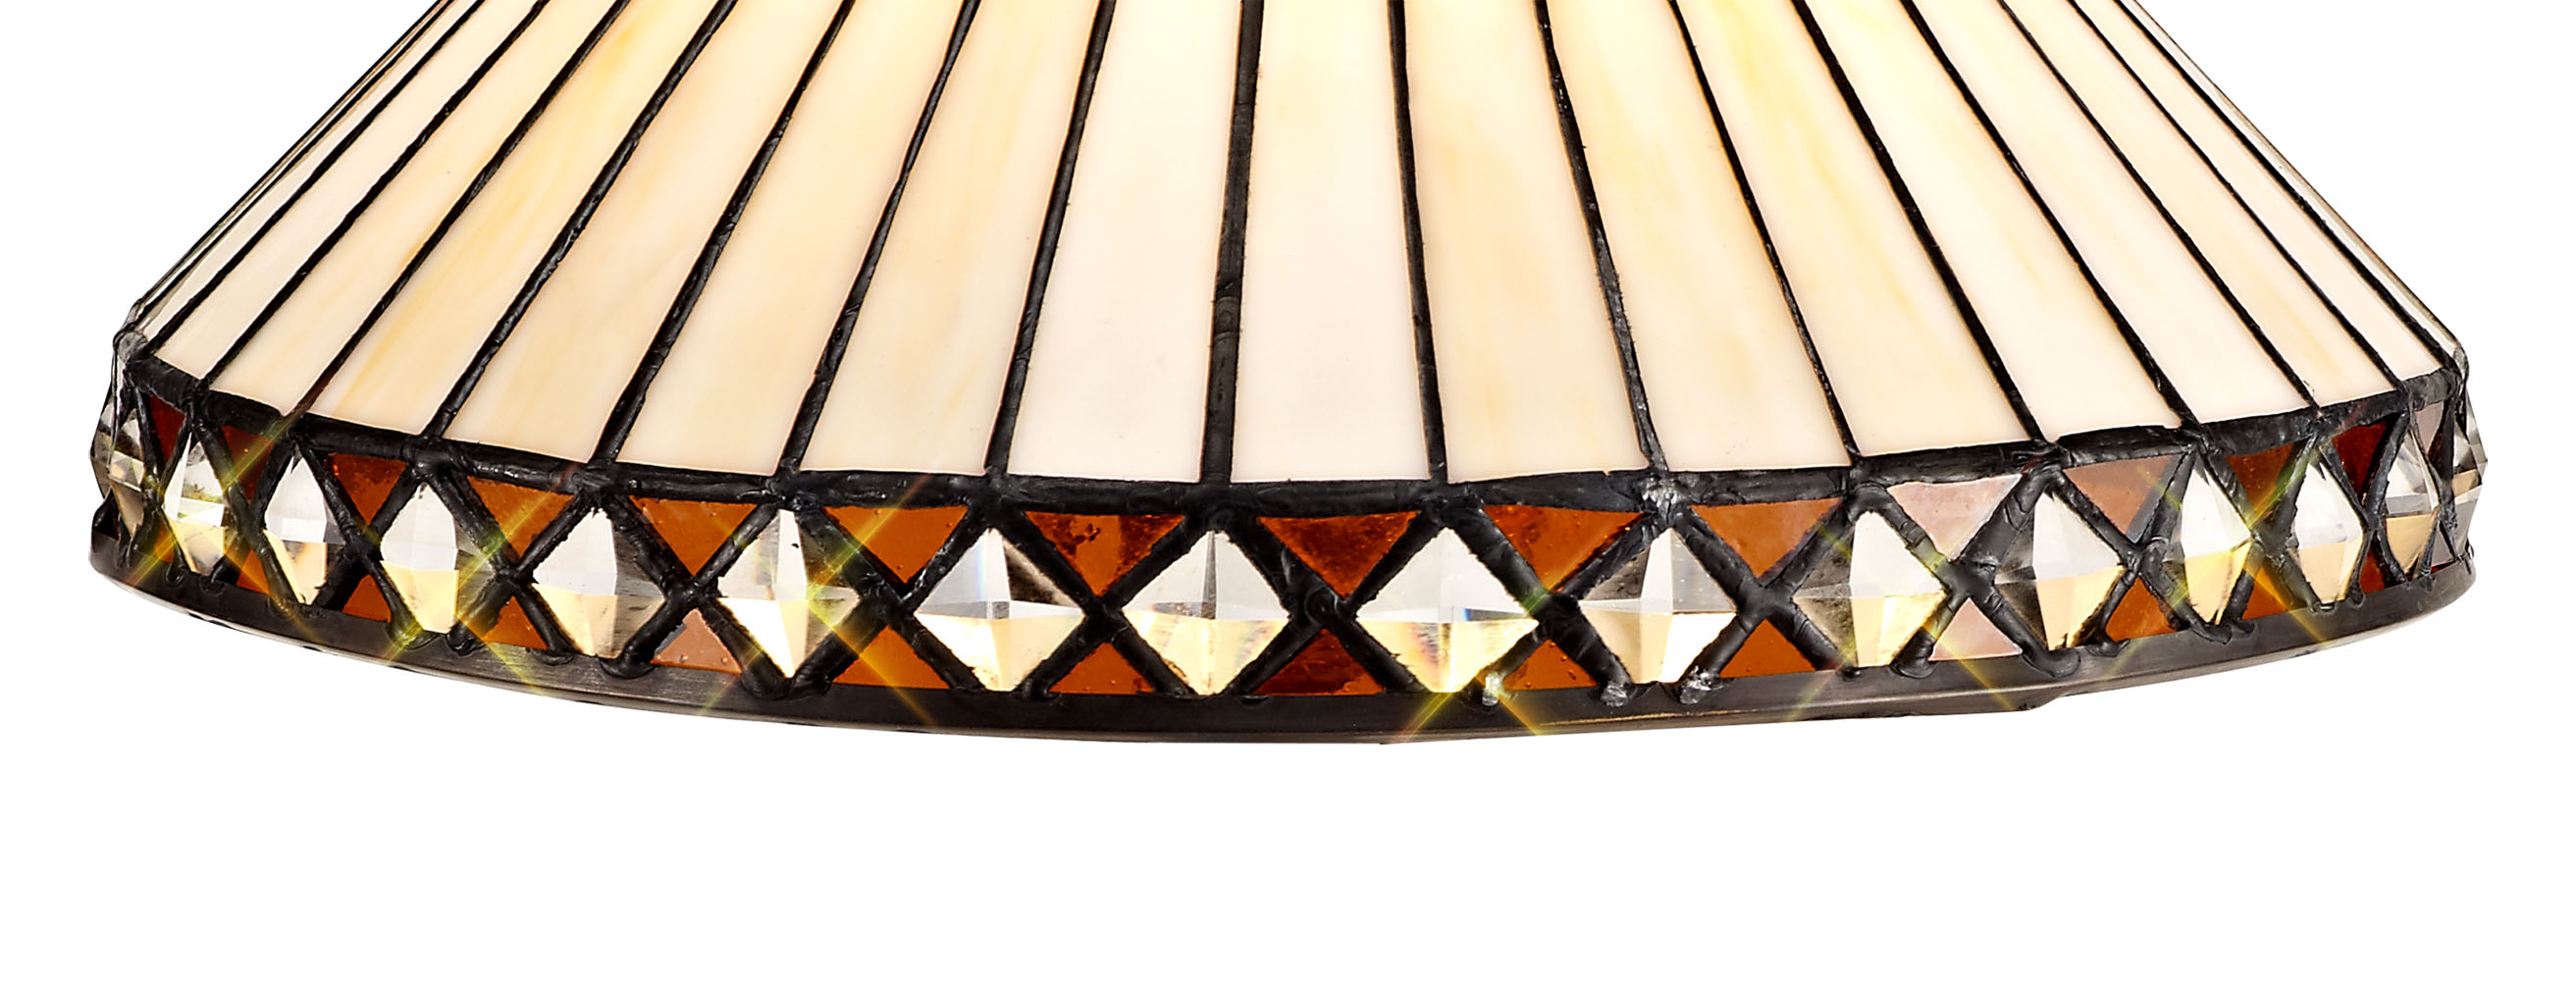 3 Light Uplighter Pendant E27 With 30cm Tiffany Shade, Amber/C/Crystal/Aged Antique Brass